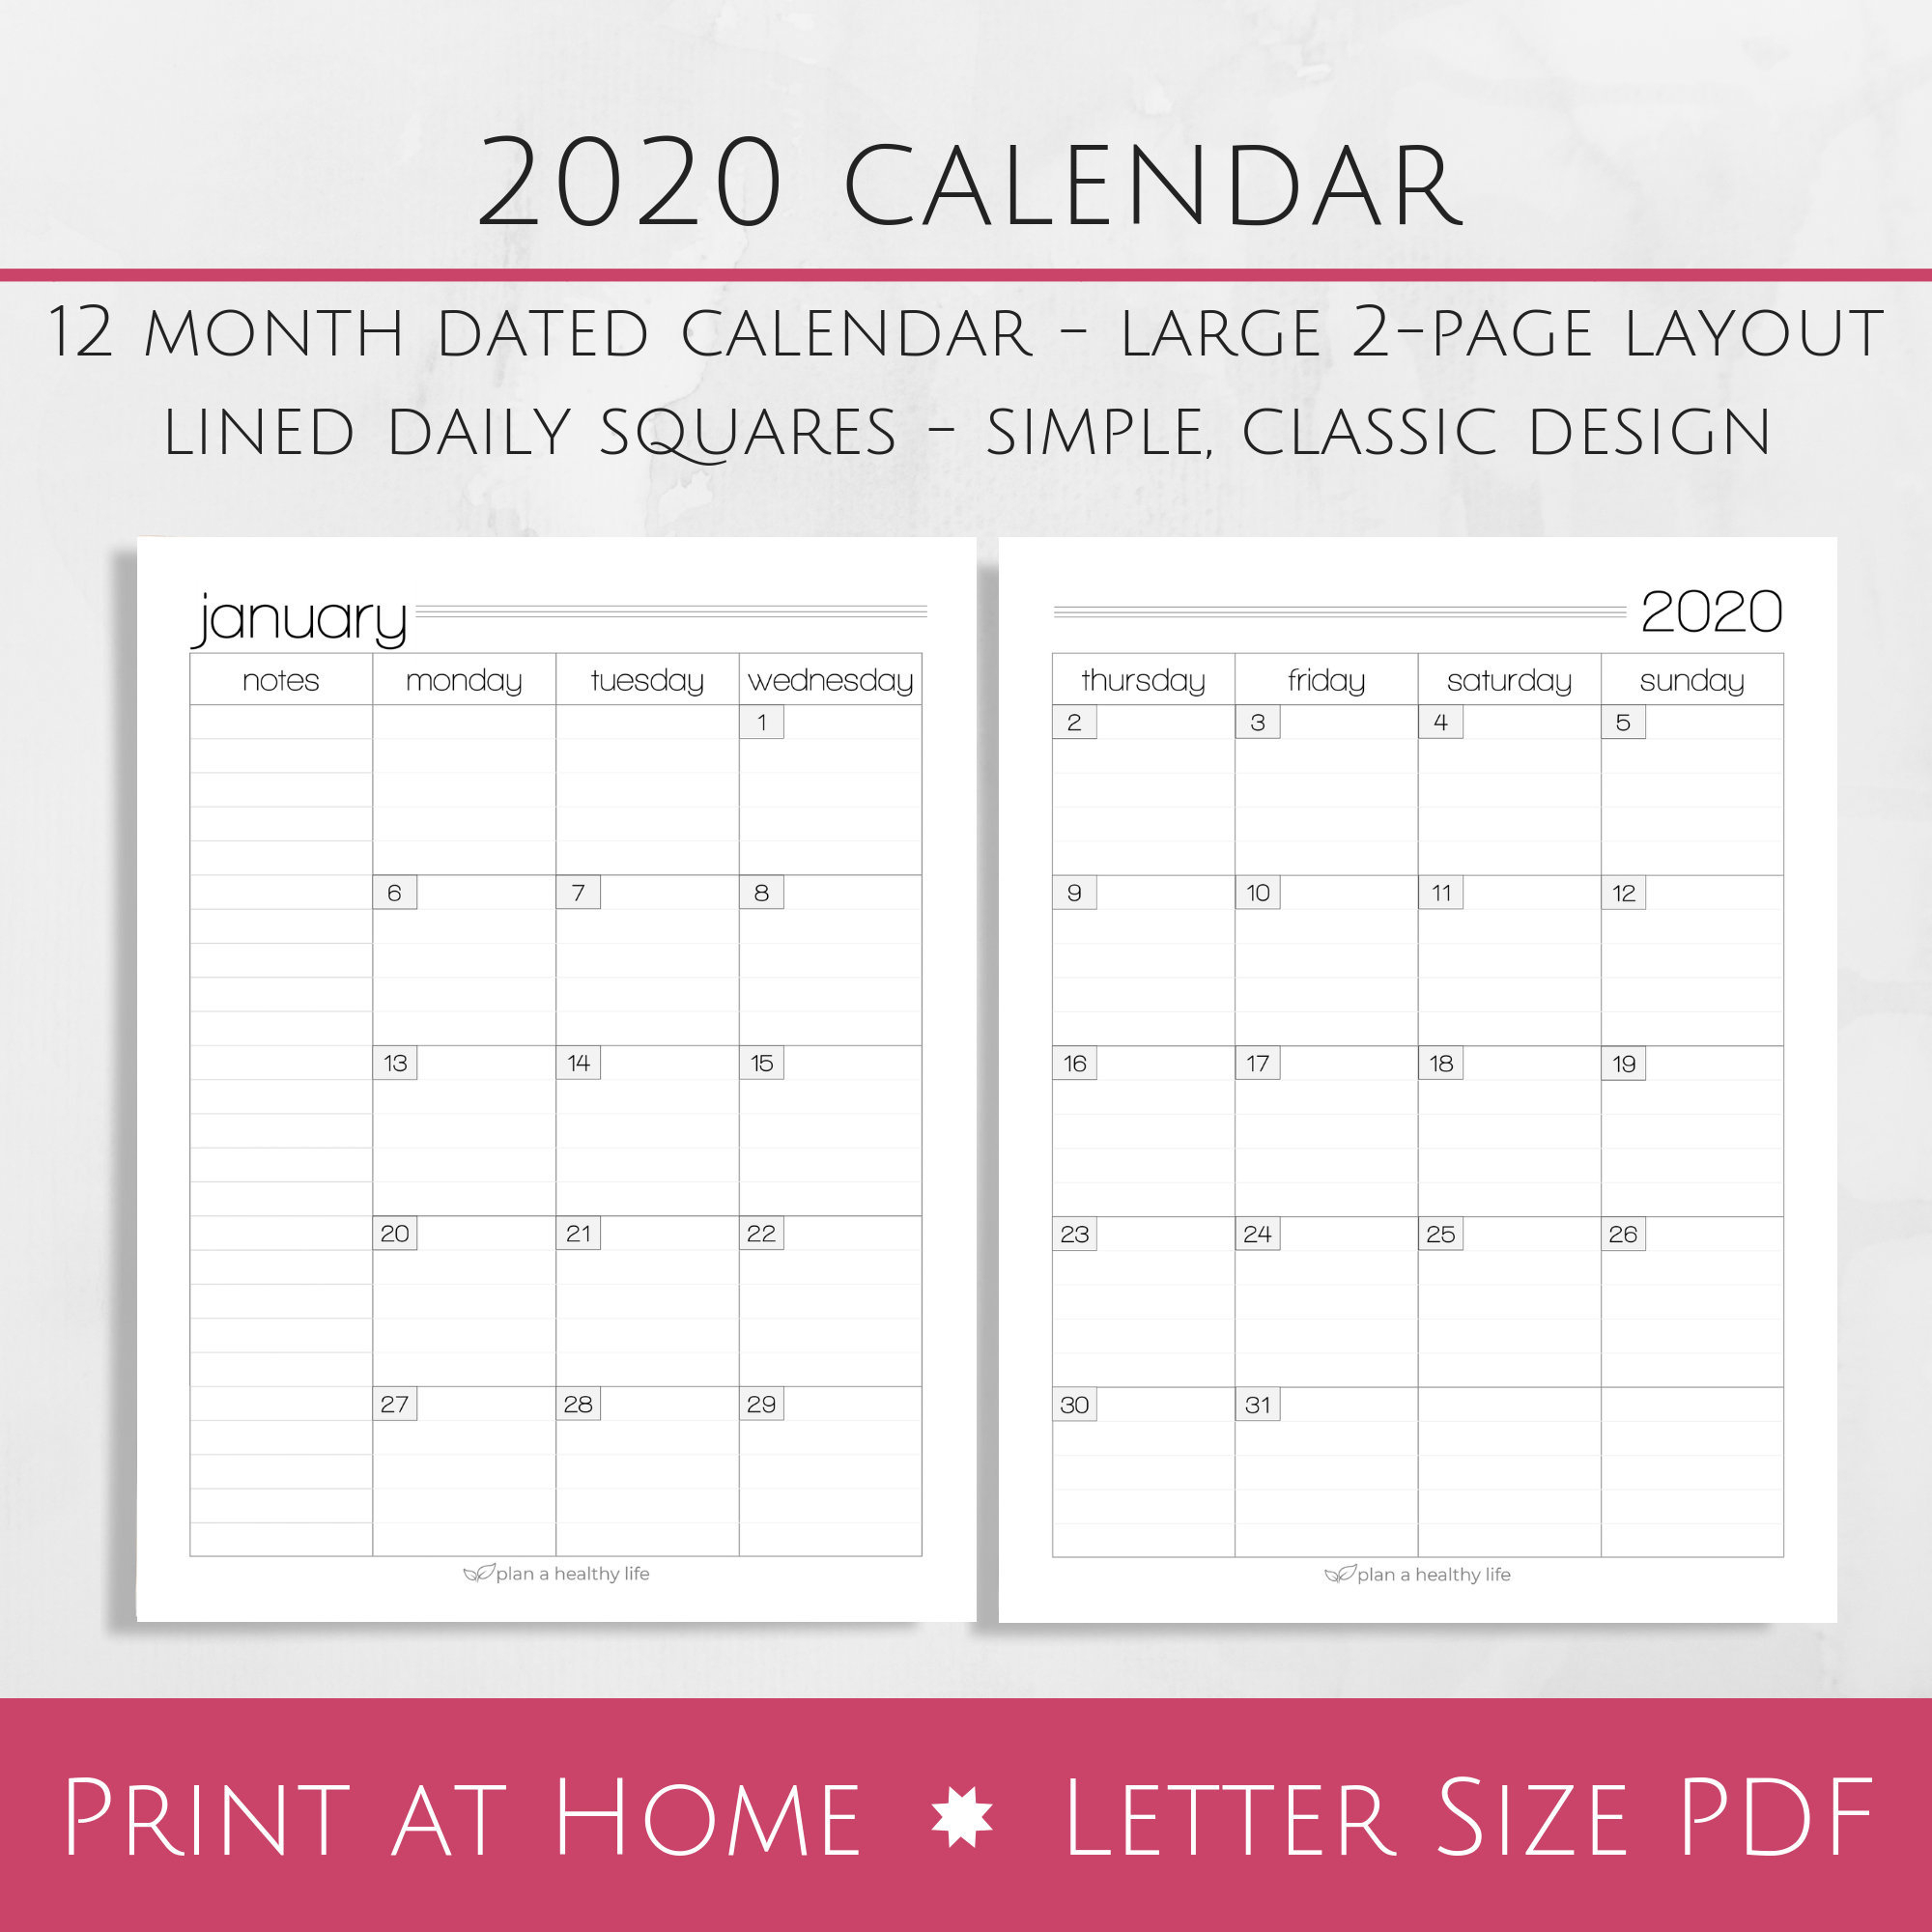 Printable 2020 Monthly Calendar - 8.5X11 Letter Size Pdf - 2020 Planner  Insert - Instant Download - Planner Calendar pertaining to 2020 Free Printable 8.5 X11 Monthly Calendars